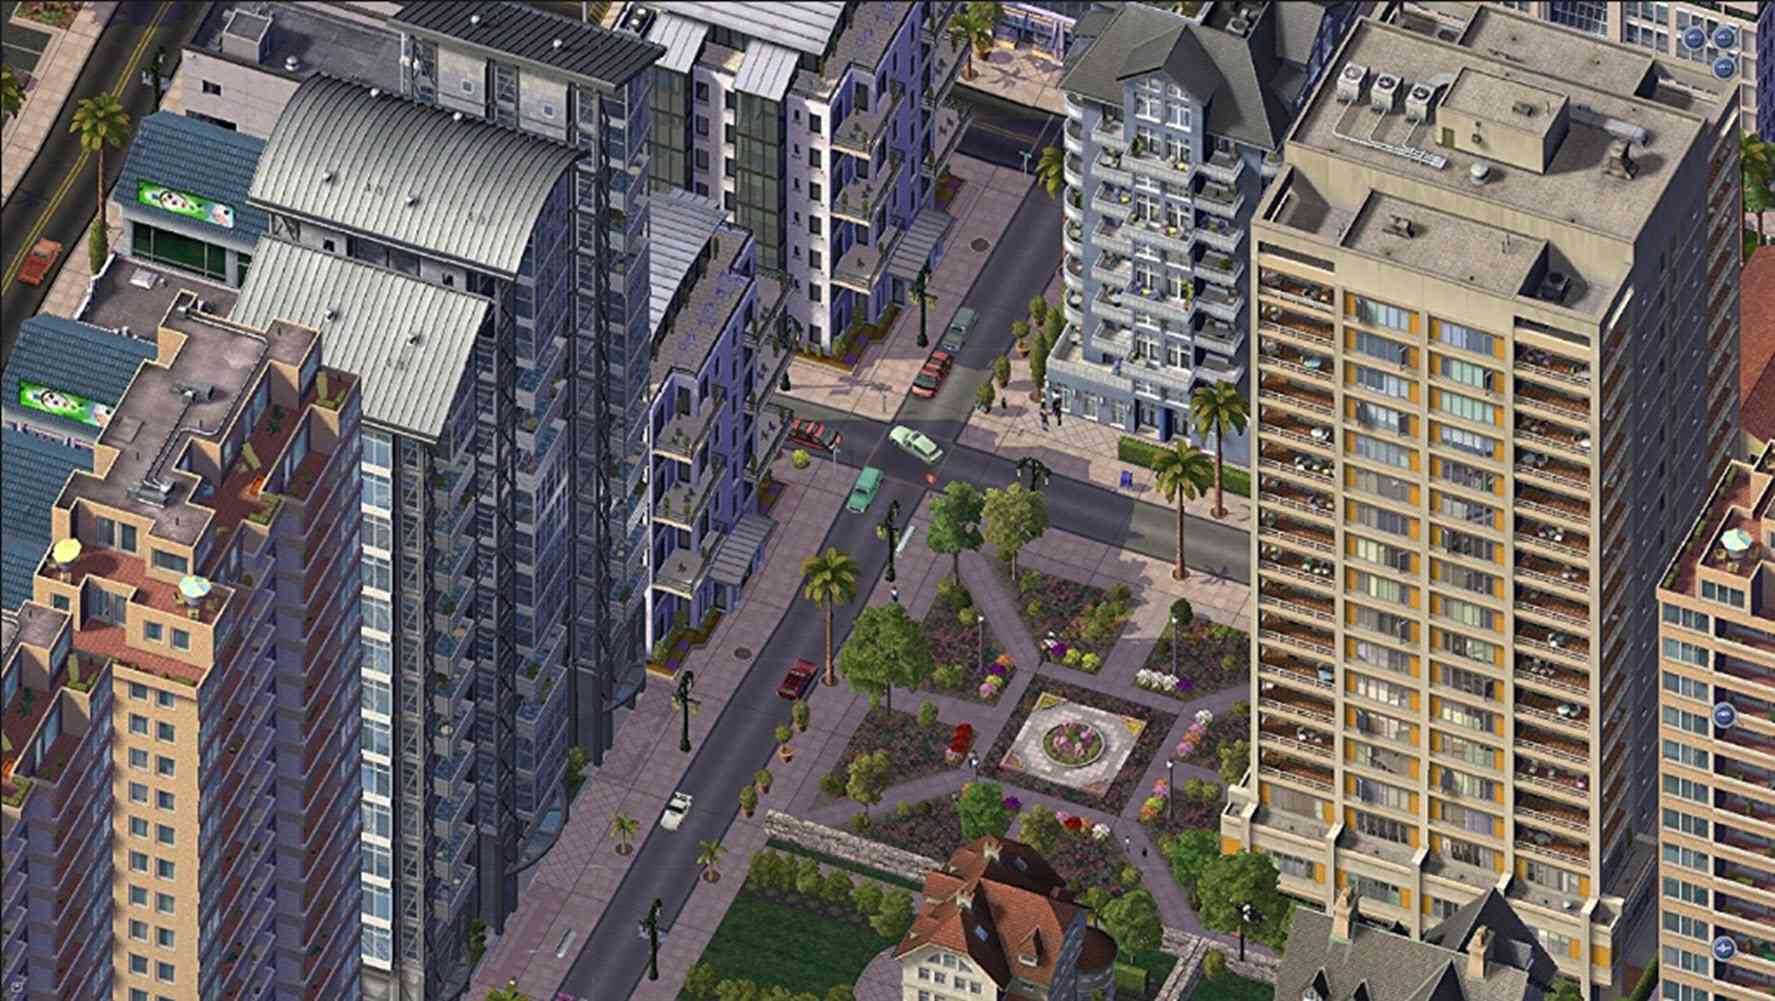 Aerial view of SimCity 4 city buildings